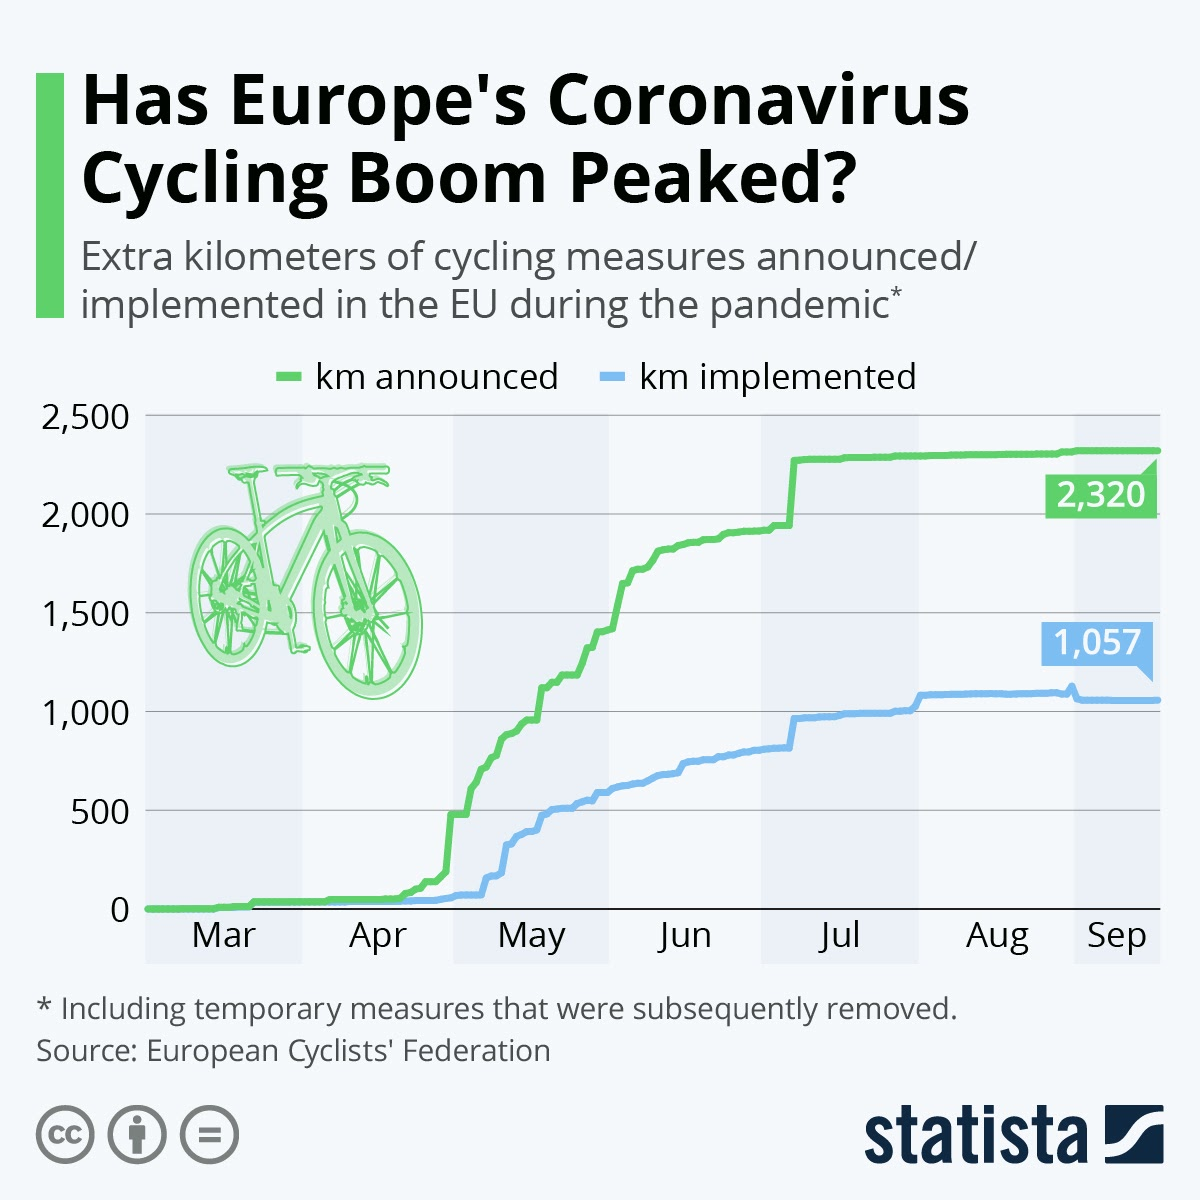 Has Europe's Coronavirus Cycling Boom Peaked? #infographic